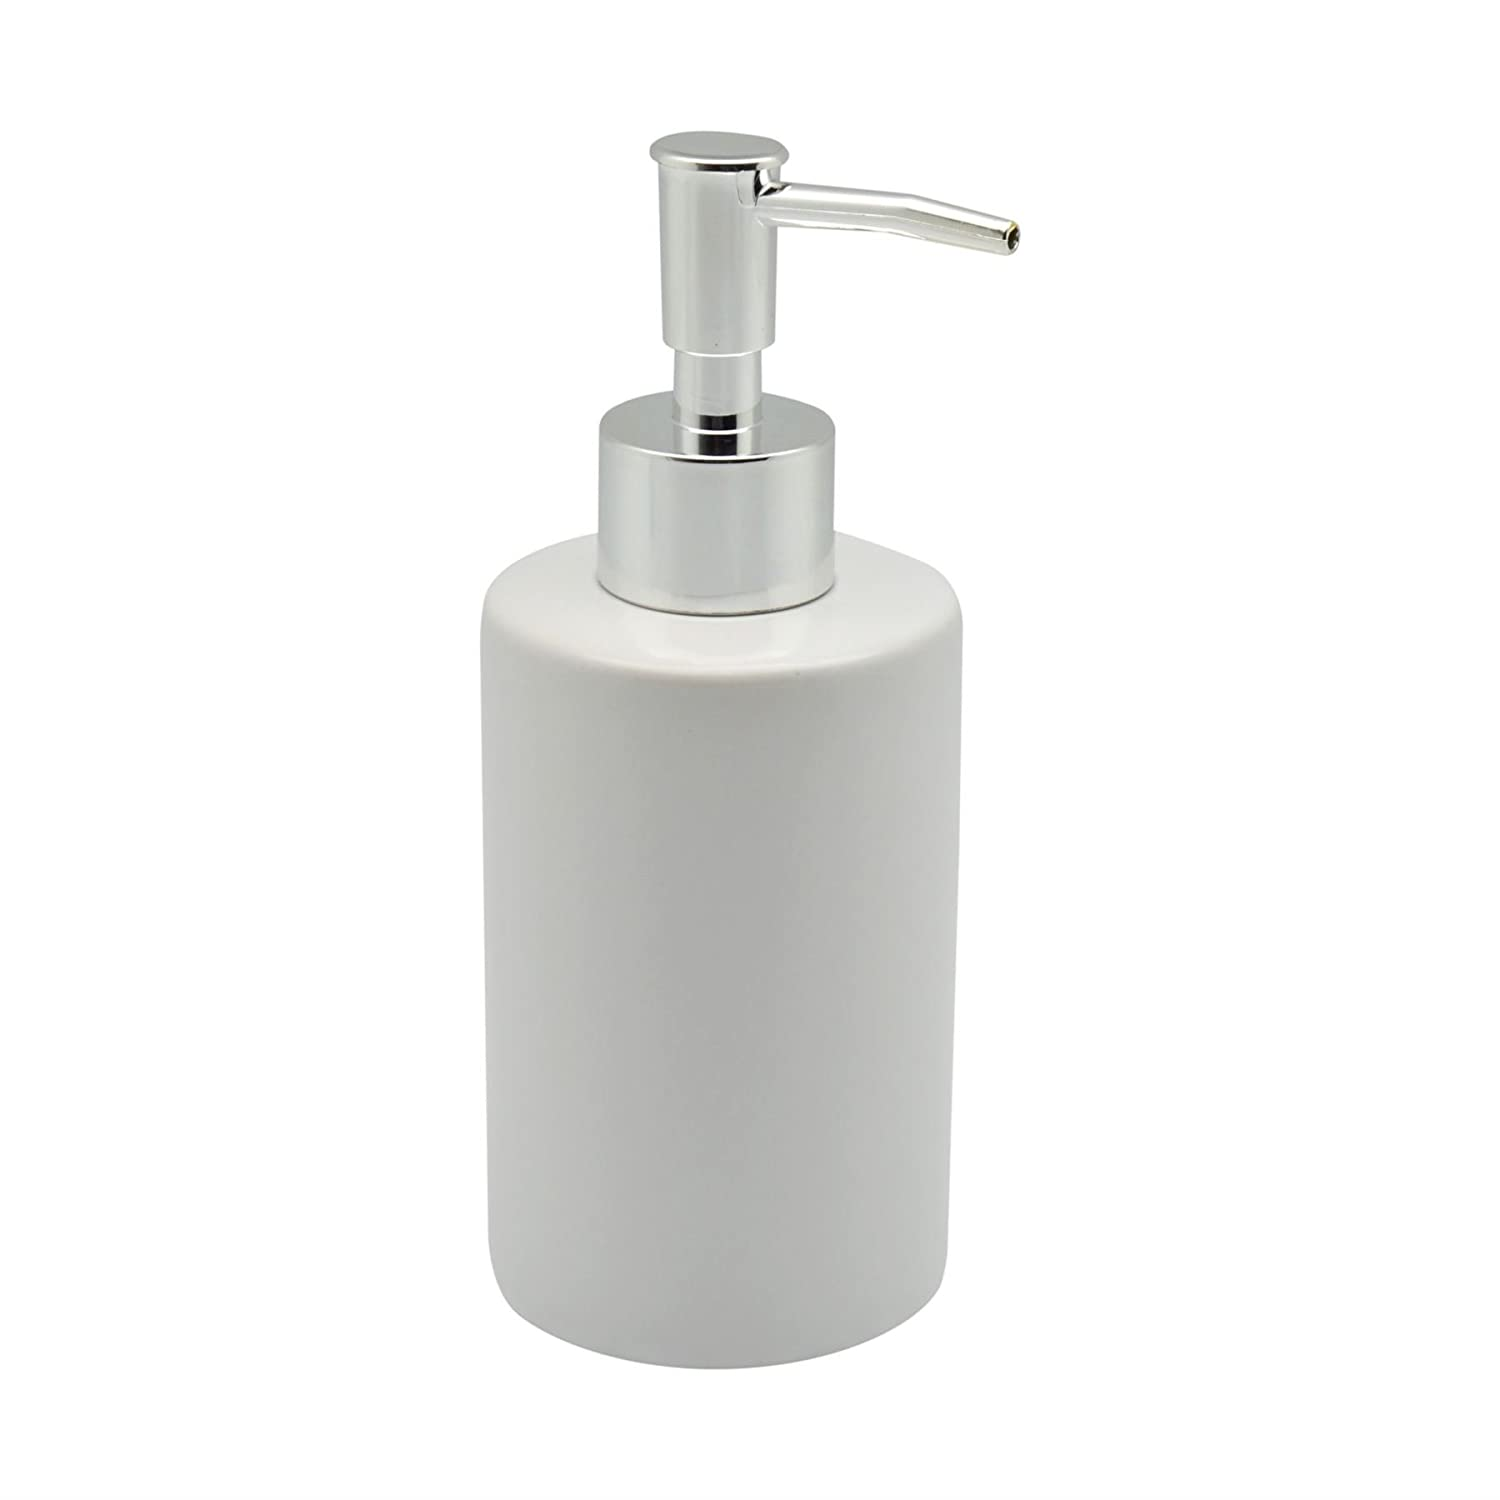 Harbour Housewares Glazed White Ceramic Soap Pump Dispenser, 280ml